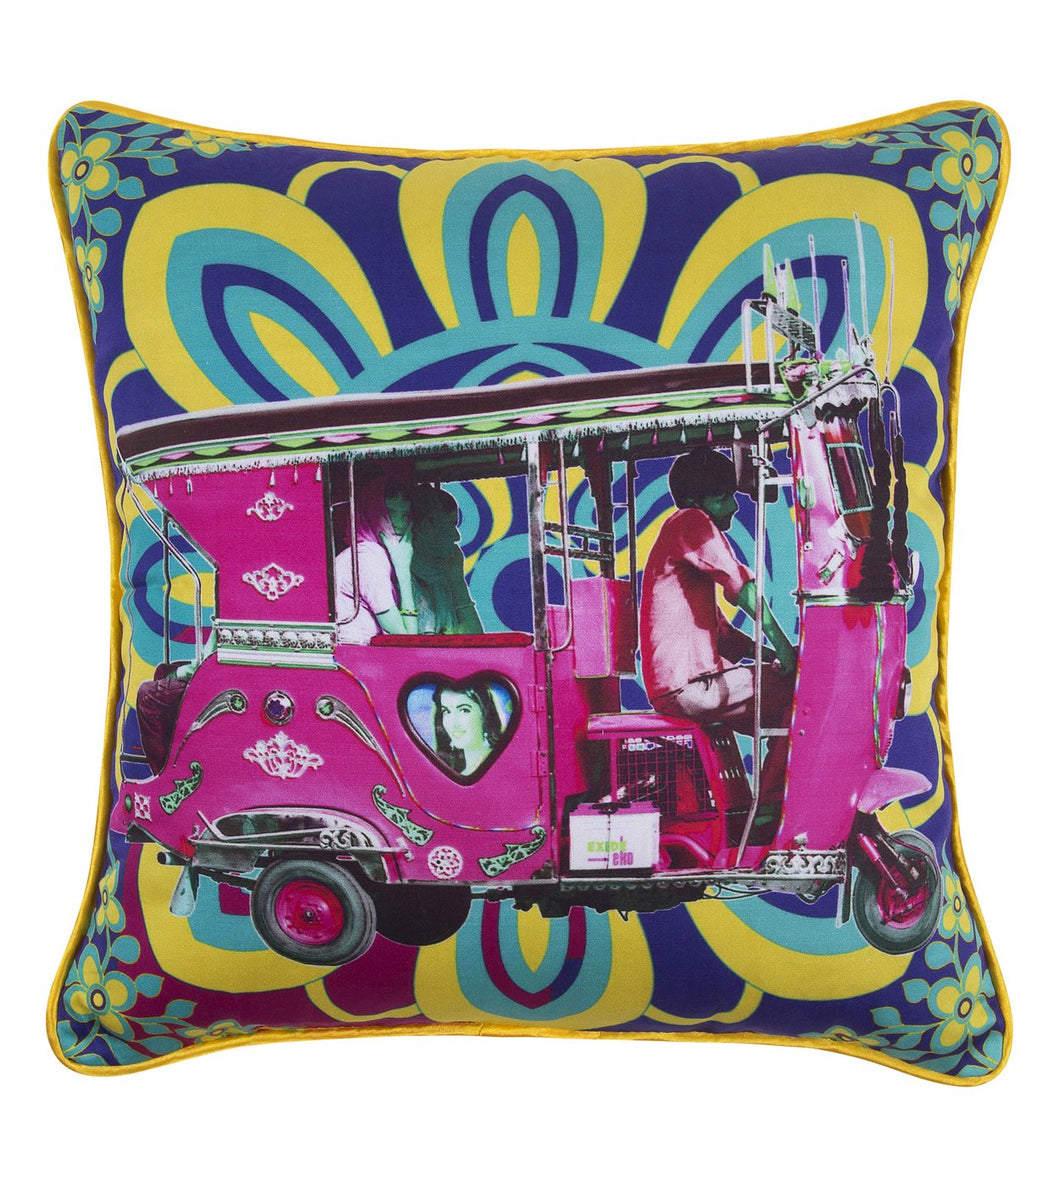 Pink Taxi Glaze Cotton Cushion Cover 16x16 Inches